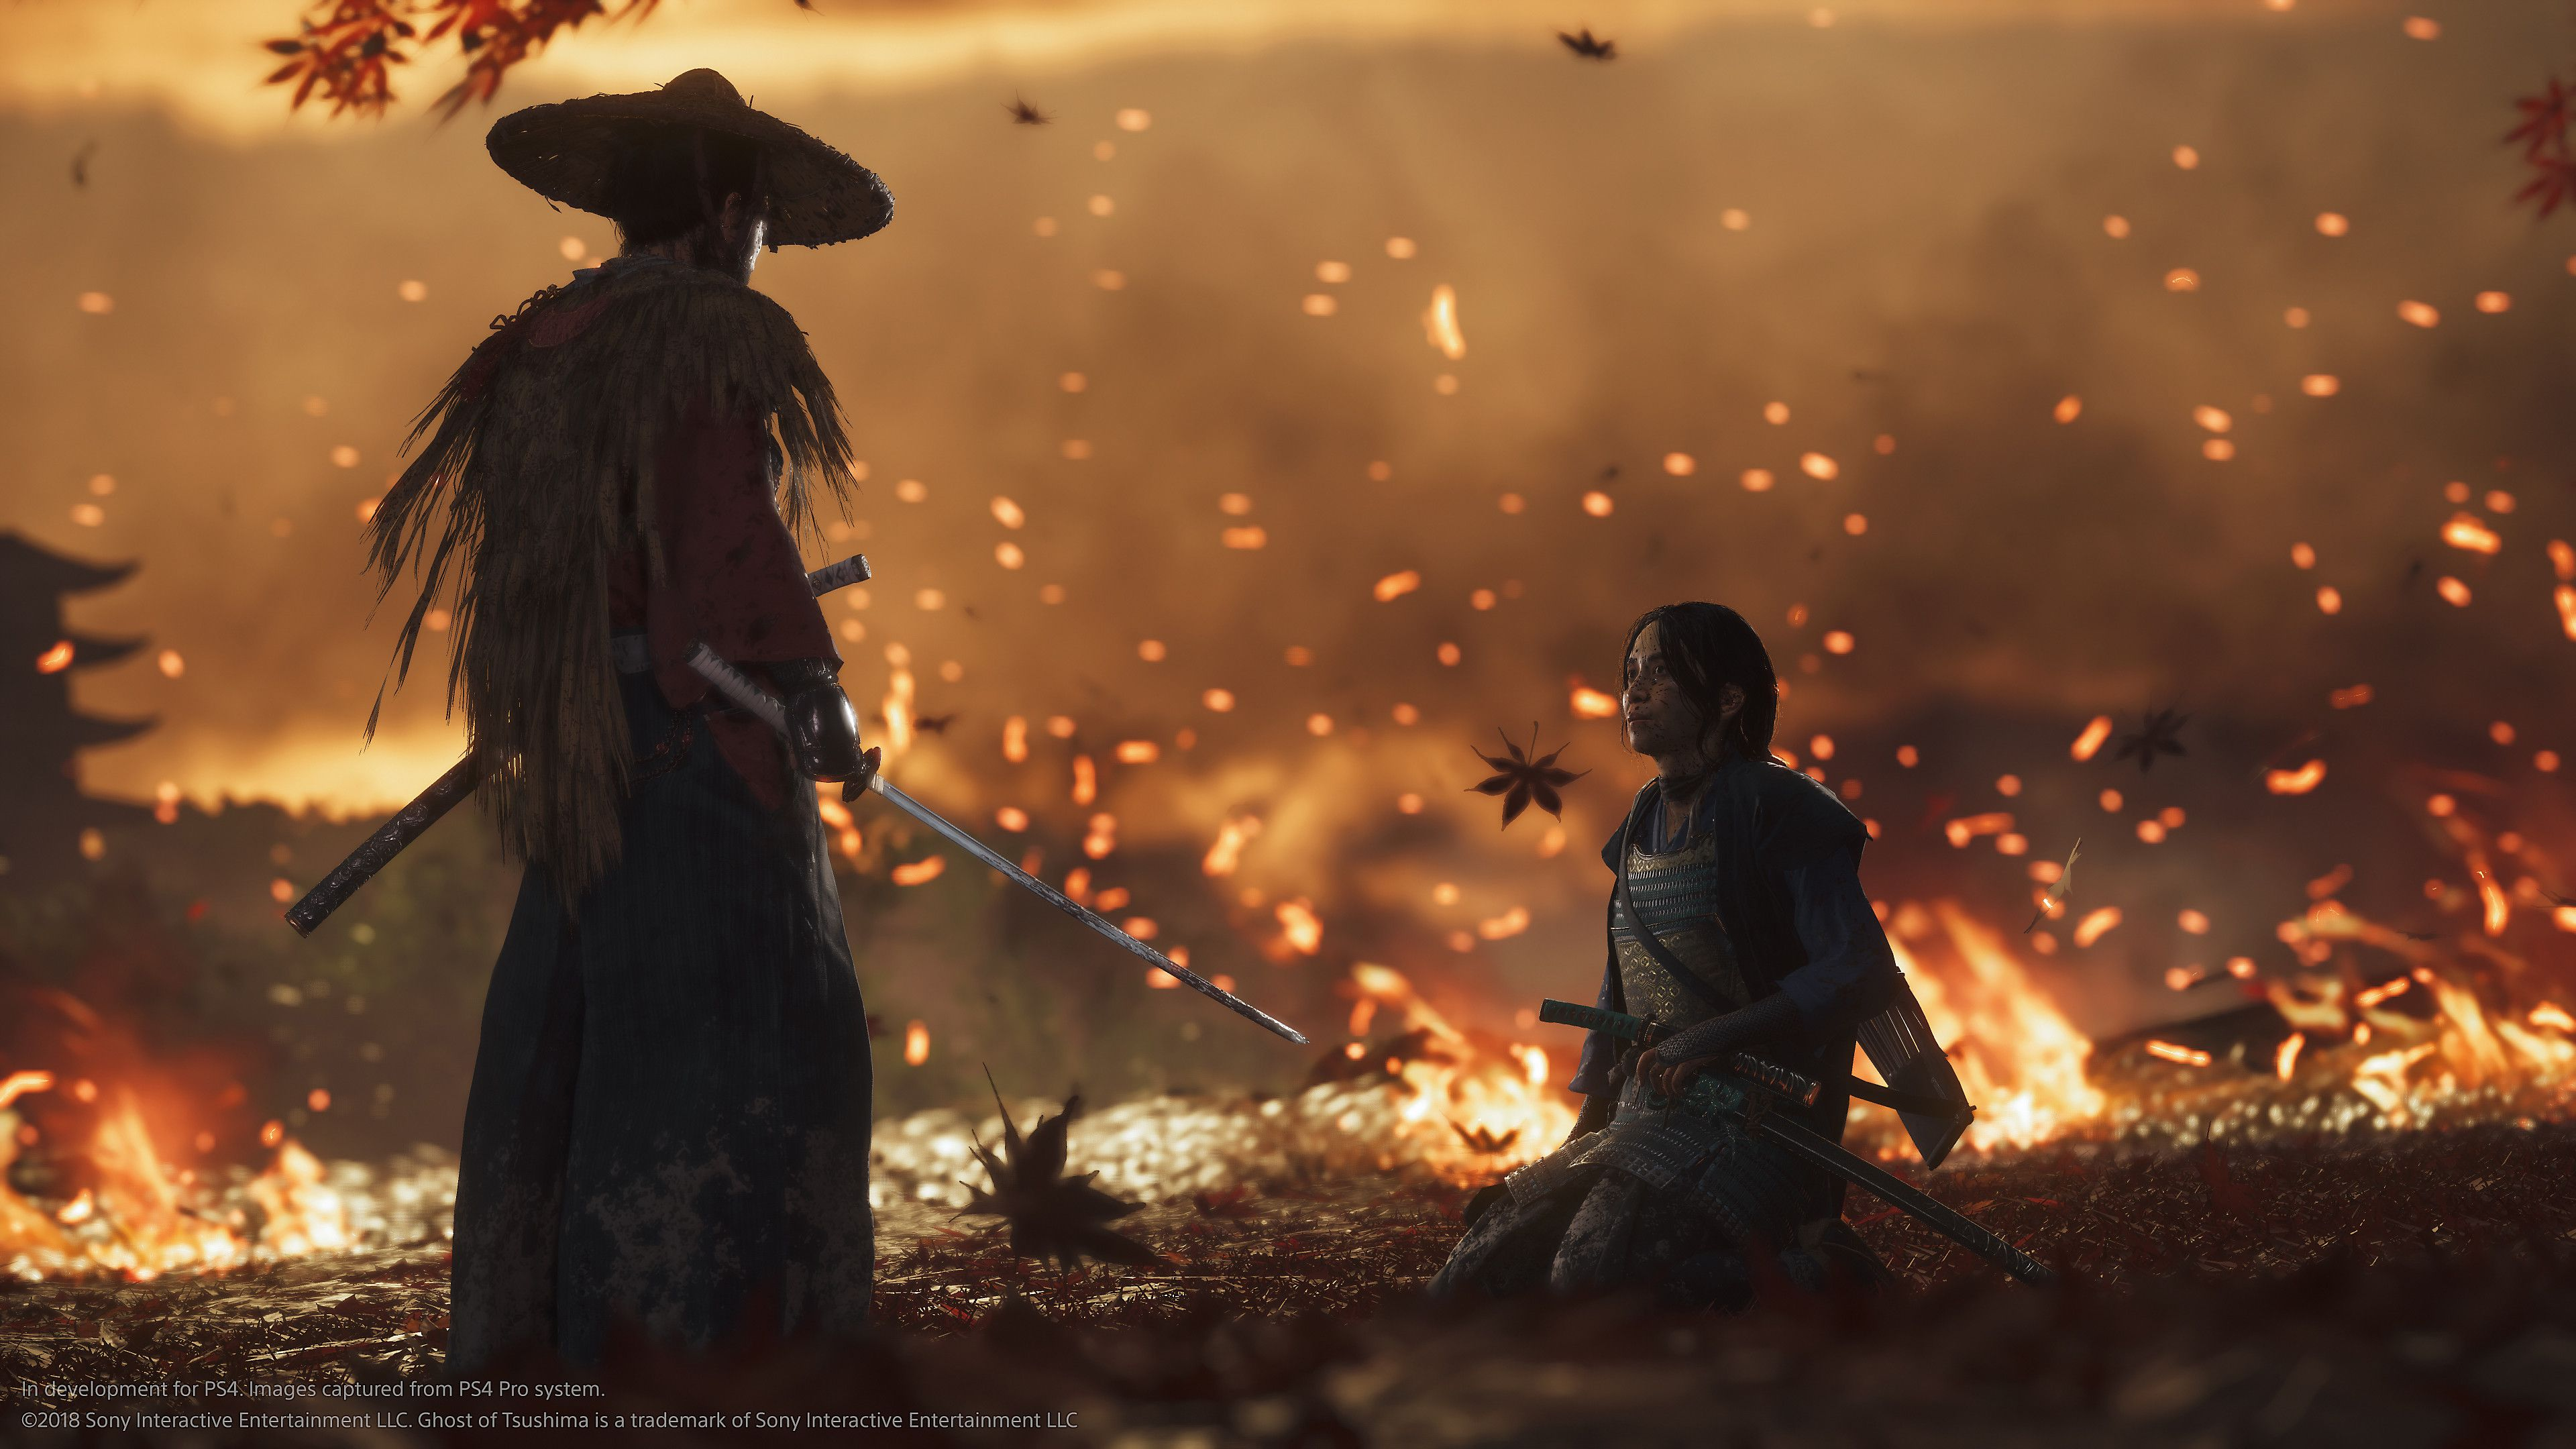 Ghost of Tsushima for PS4 and PS5 release date, trailers, rumours and news